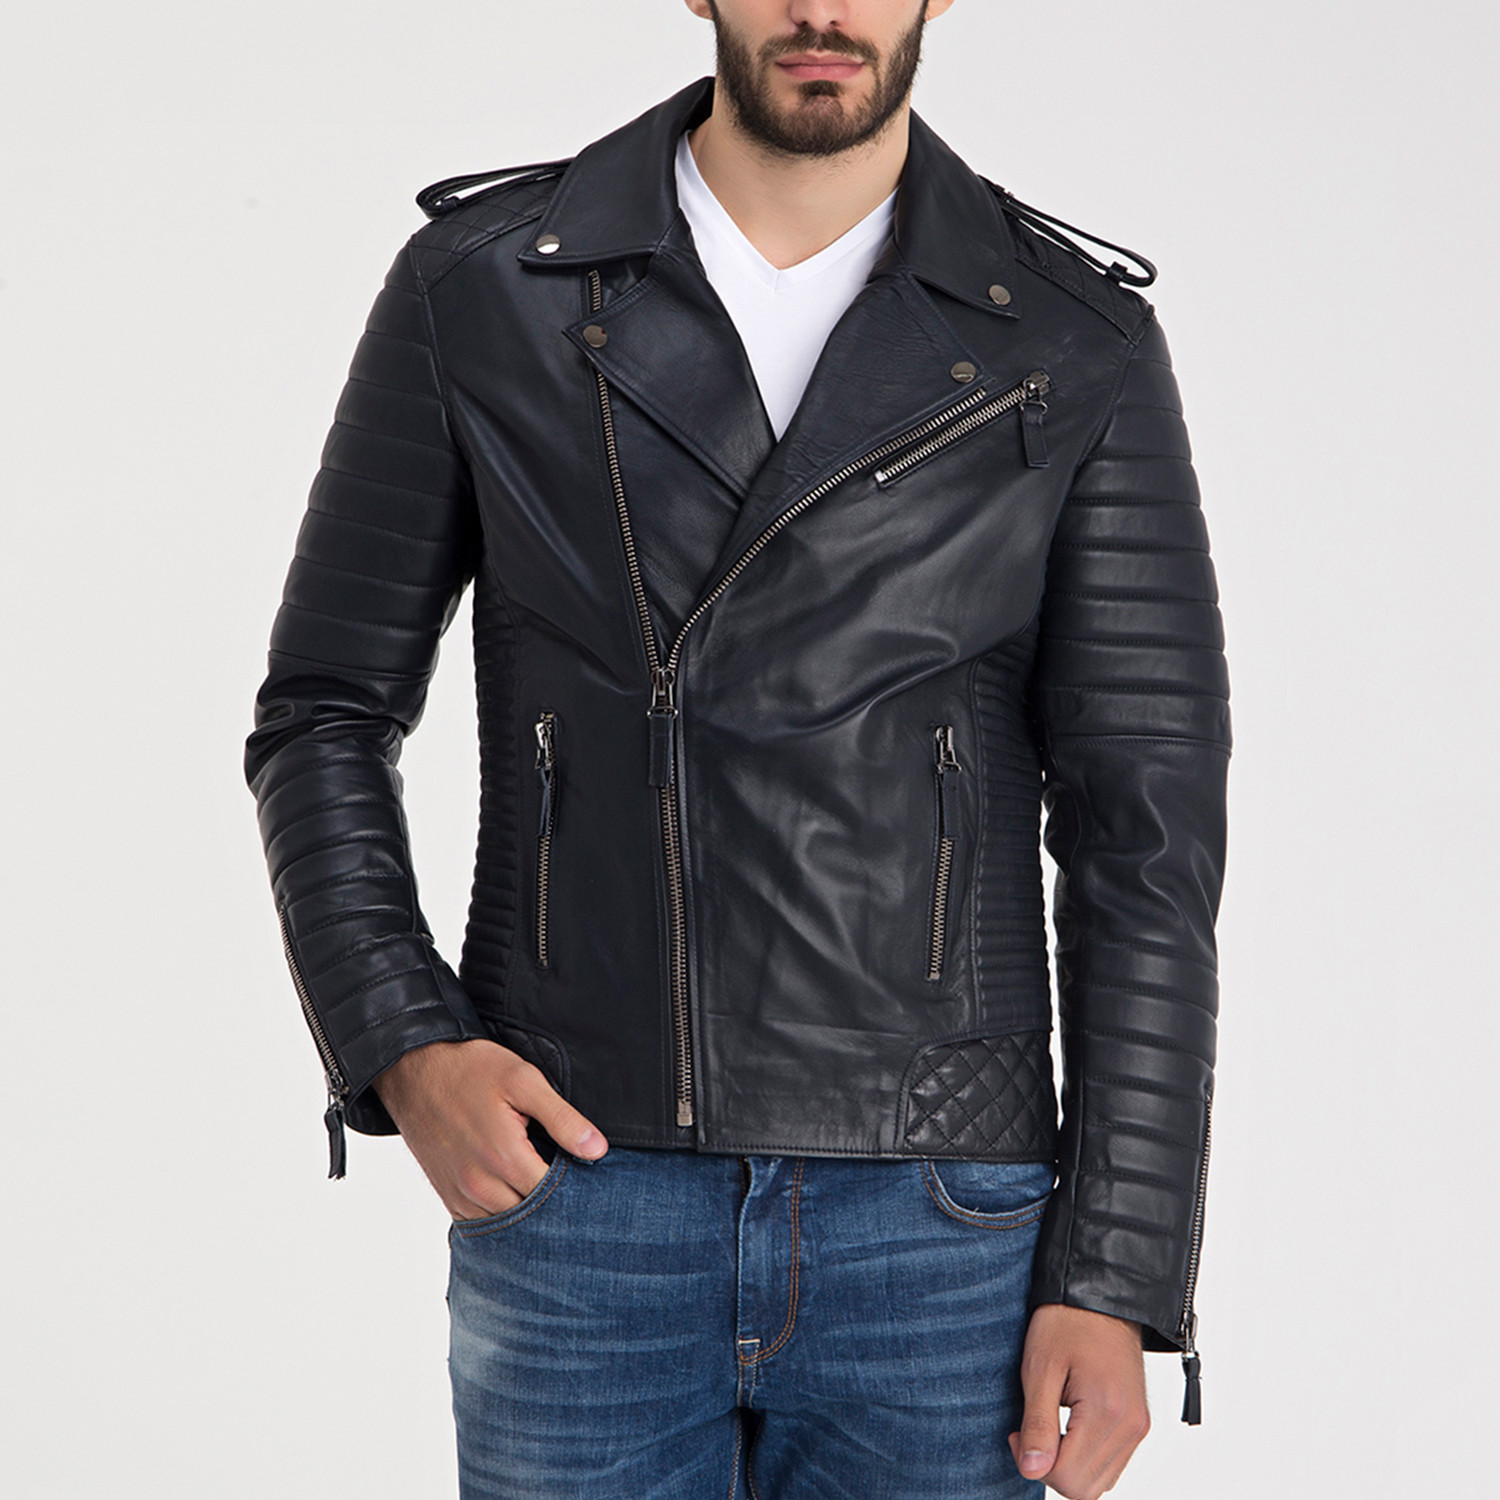 Beckett Leather Jacket Navy Blue S Iparelde Touch Of Modern